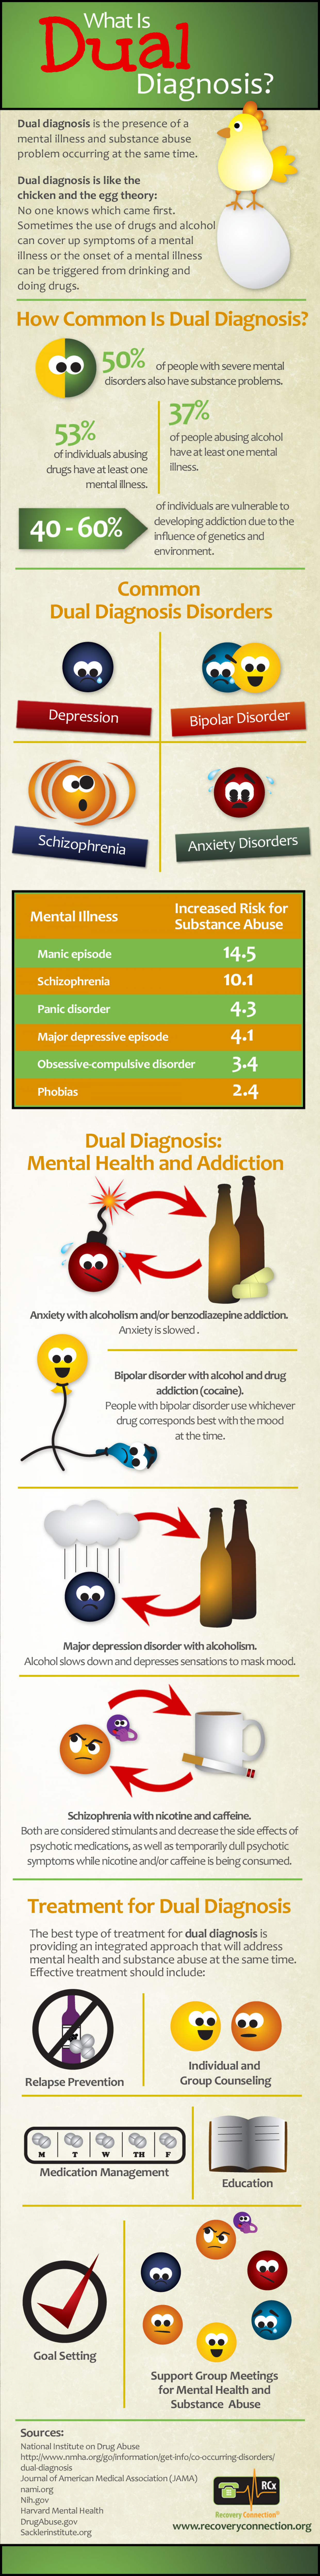 What is Dual Diagnosis? Infographic